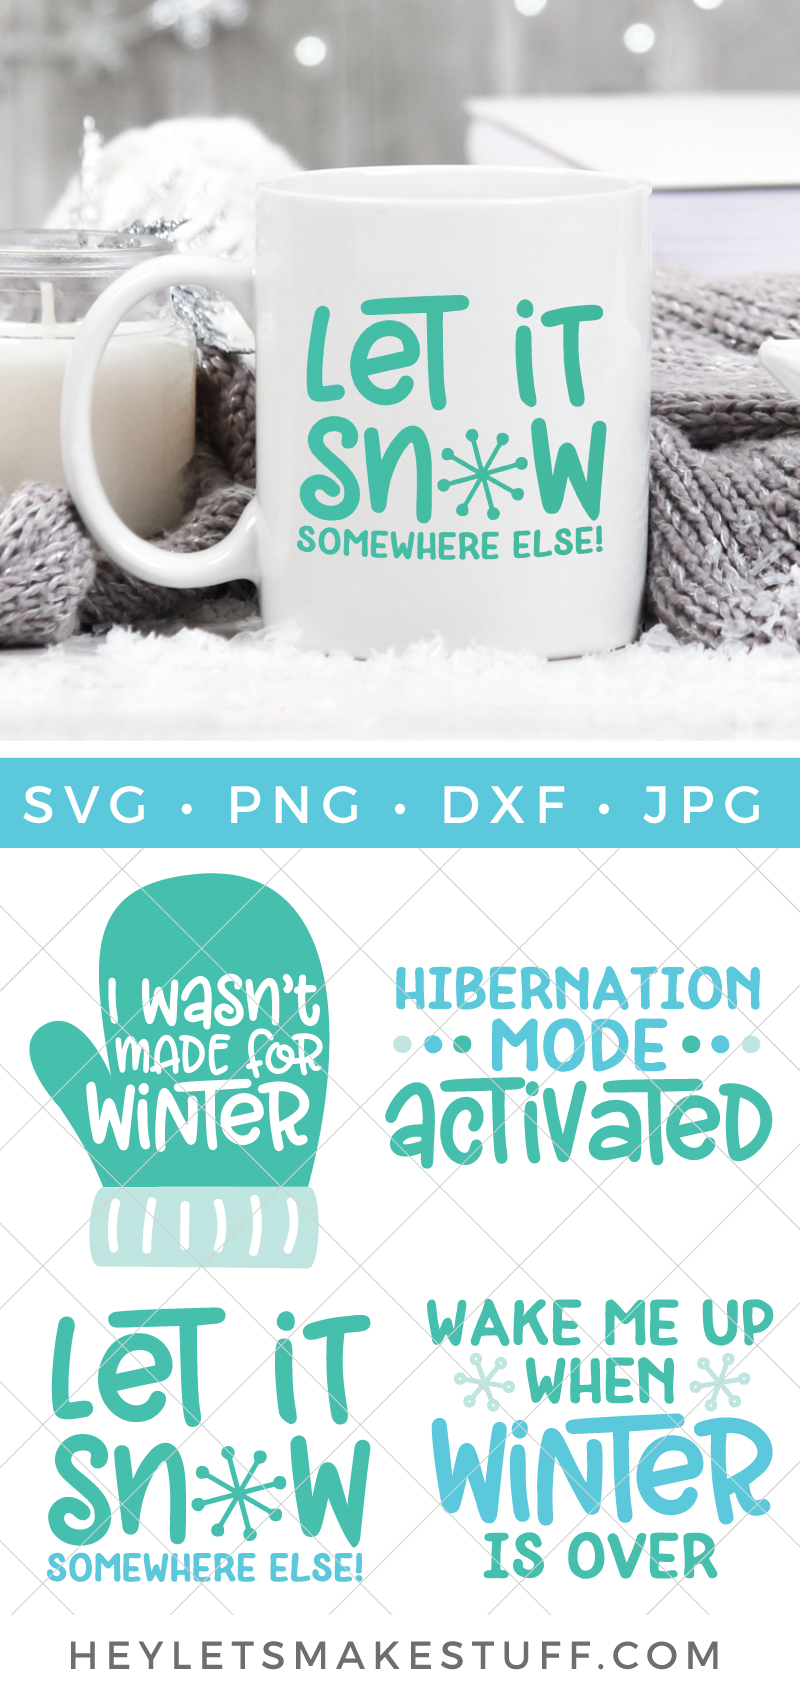 Baby, it's cold outside! Stay inside where it's warm and create cozy pajamas, snuggly blankets and steaming coffee mugs with the four cut files in this Winter SVG Bundle. via @heyletsmakestuf